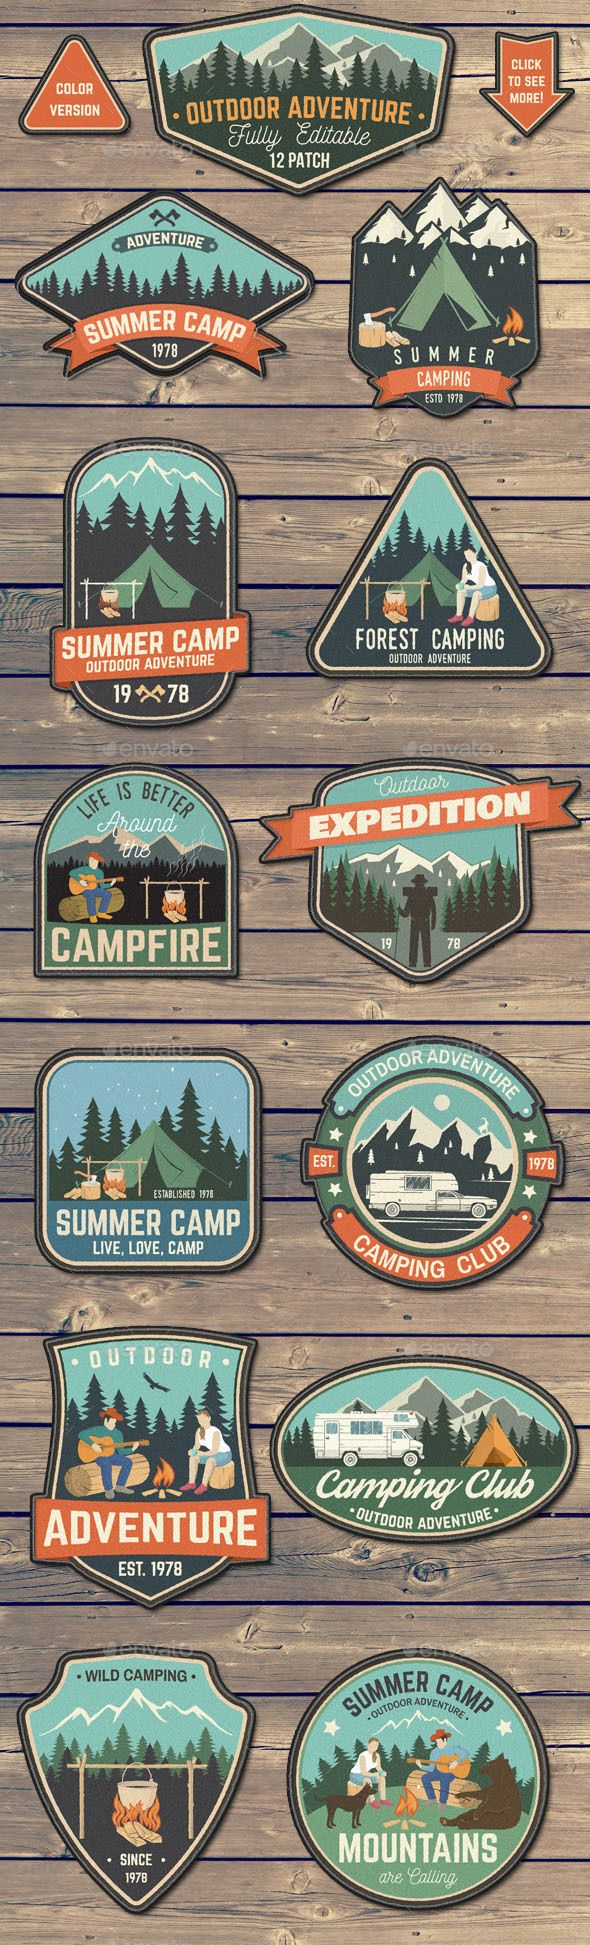 Outdoor Adventure Patches Templates PSD, Vector EPS, AI Illustrator – Download: …